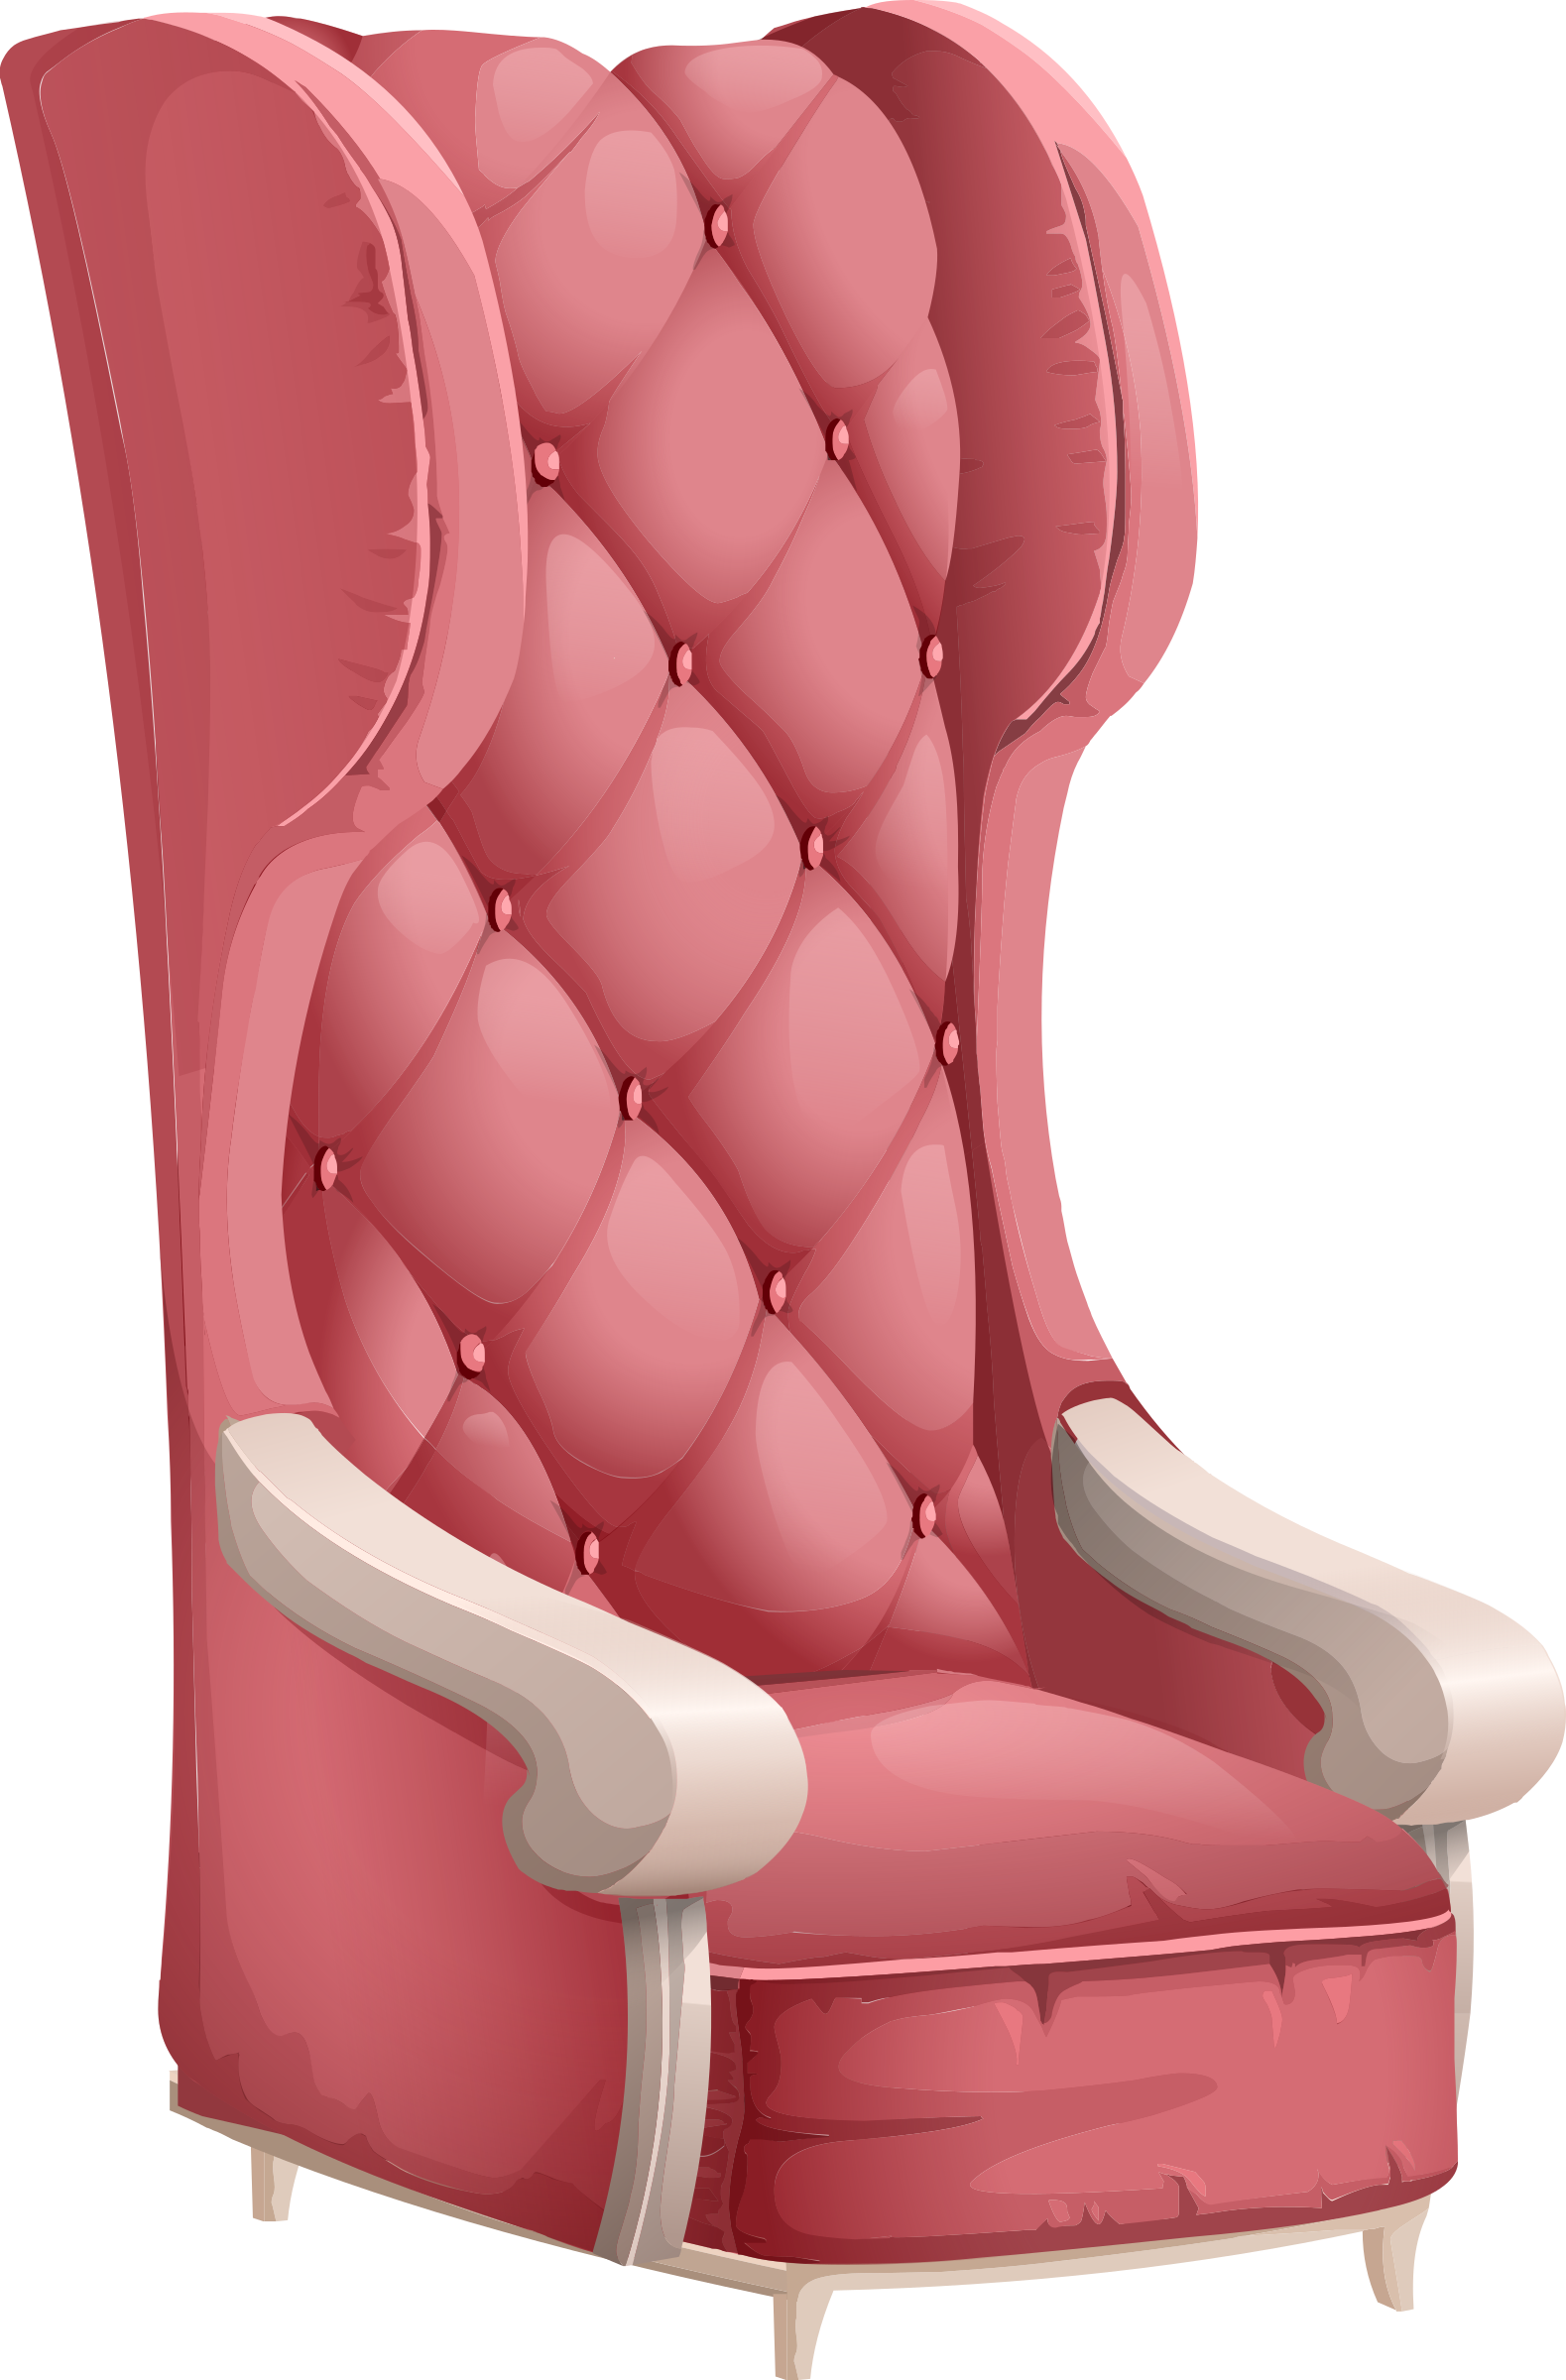 Old-fashioned fancy chair by anarres